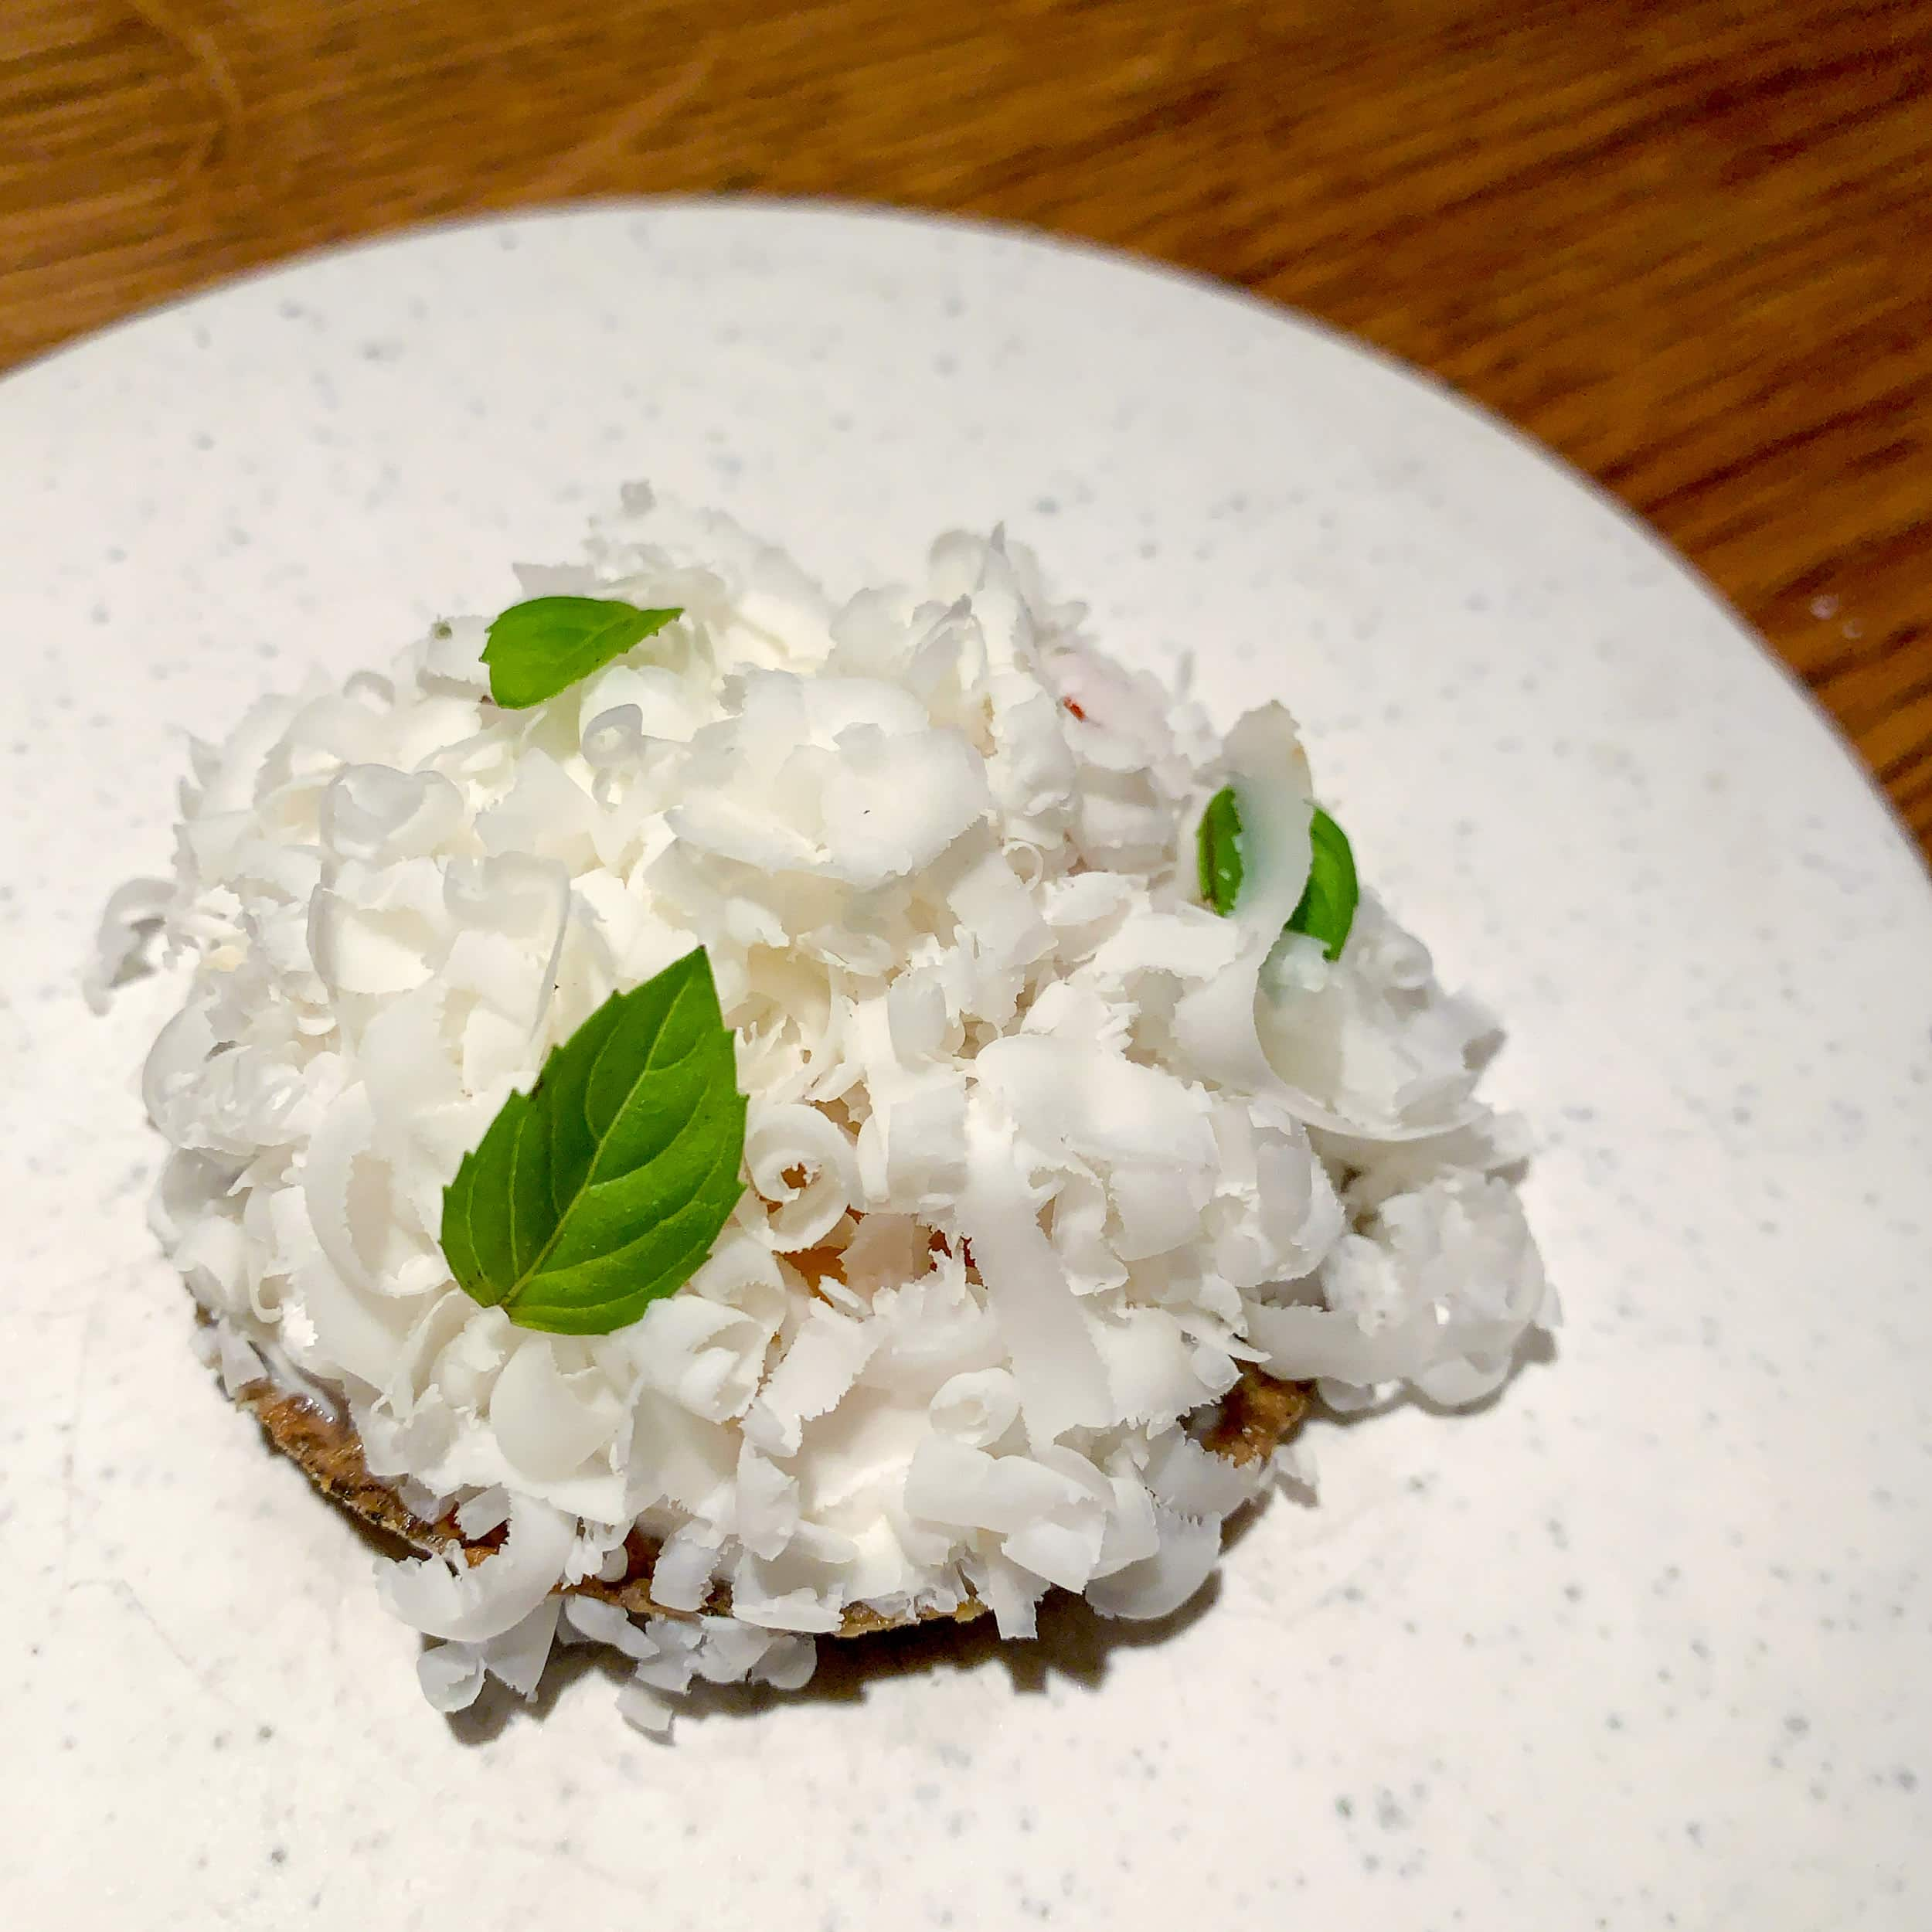 Aged goat cheese at Restaurant Relae